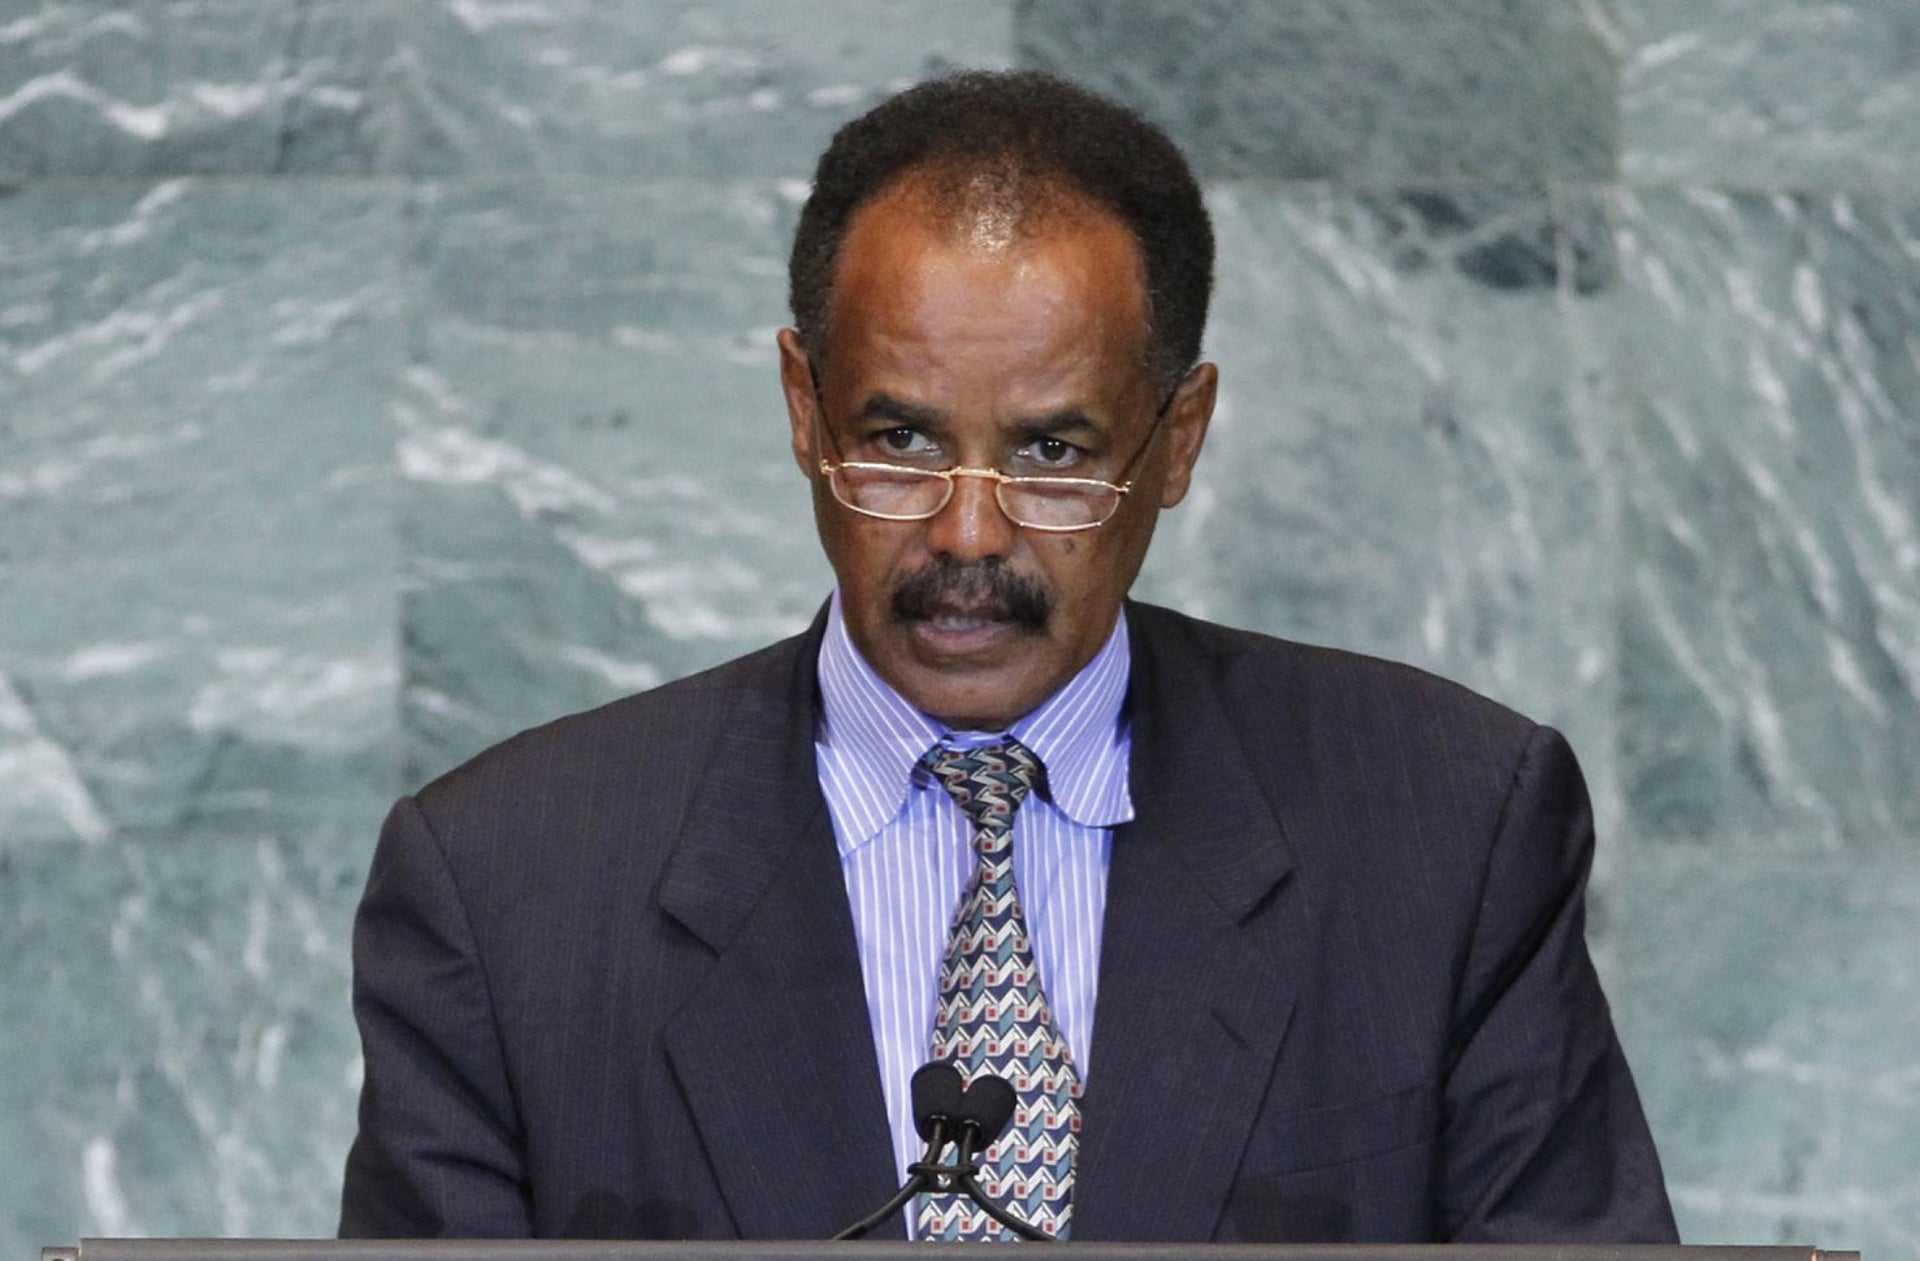 Sept. 23, 2011, President Isaias Afwerki of Eritrea addresses the 66th session of the United Nations General Assembly at U.N. headquarters.